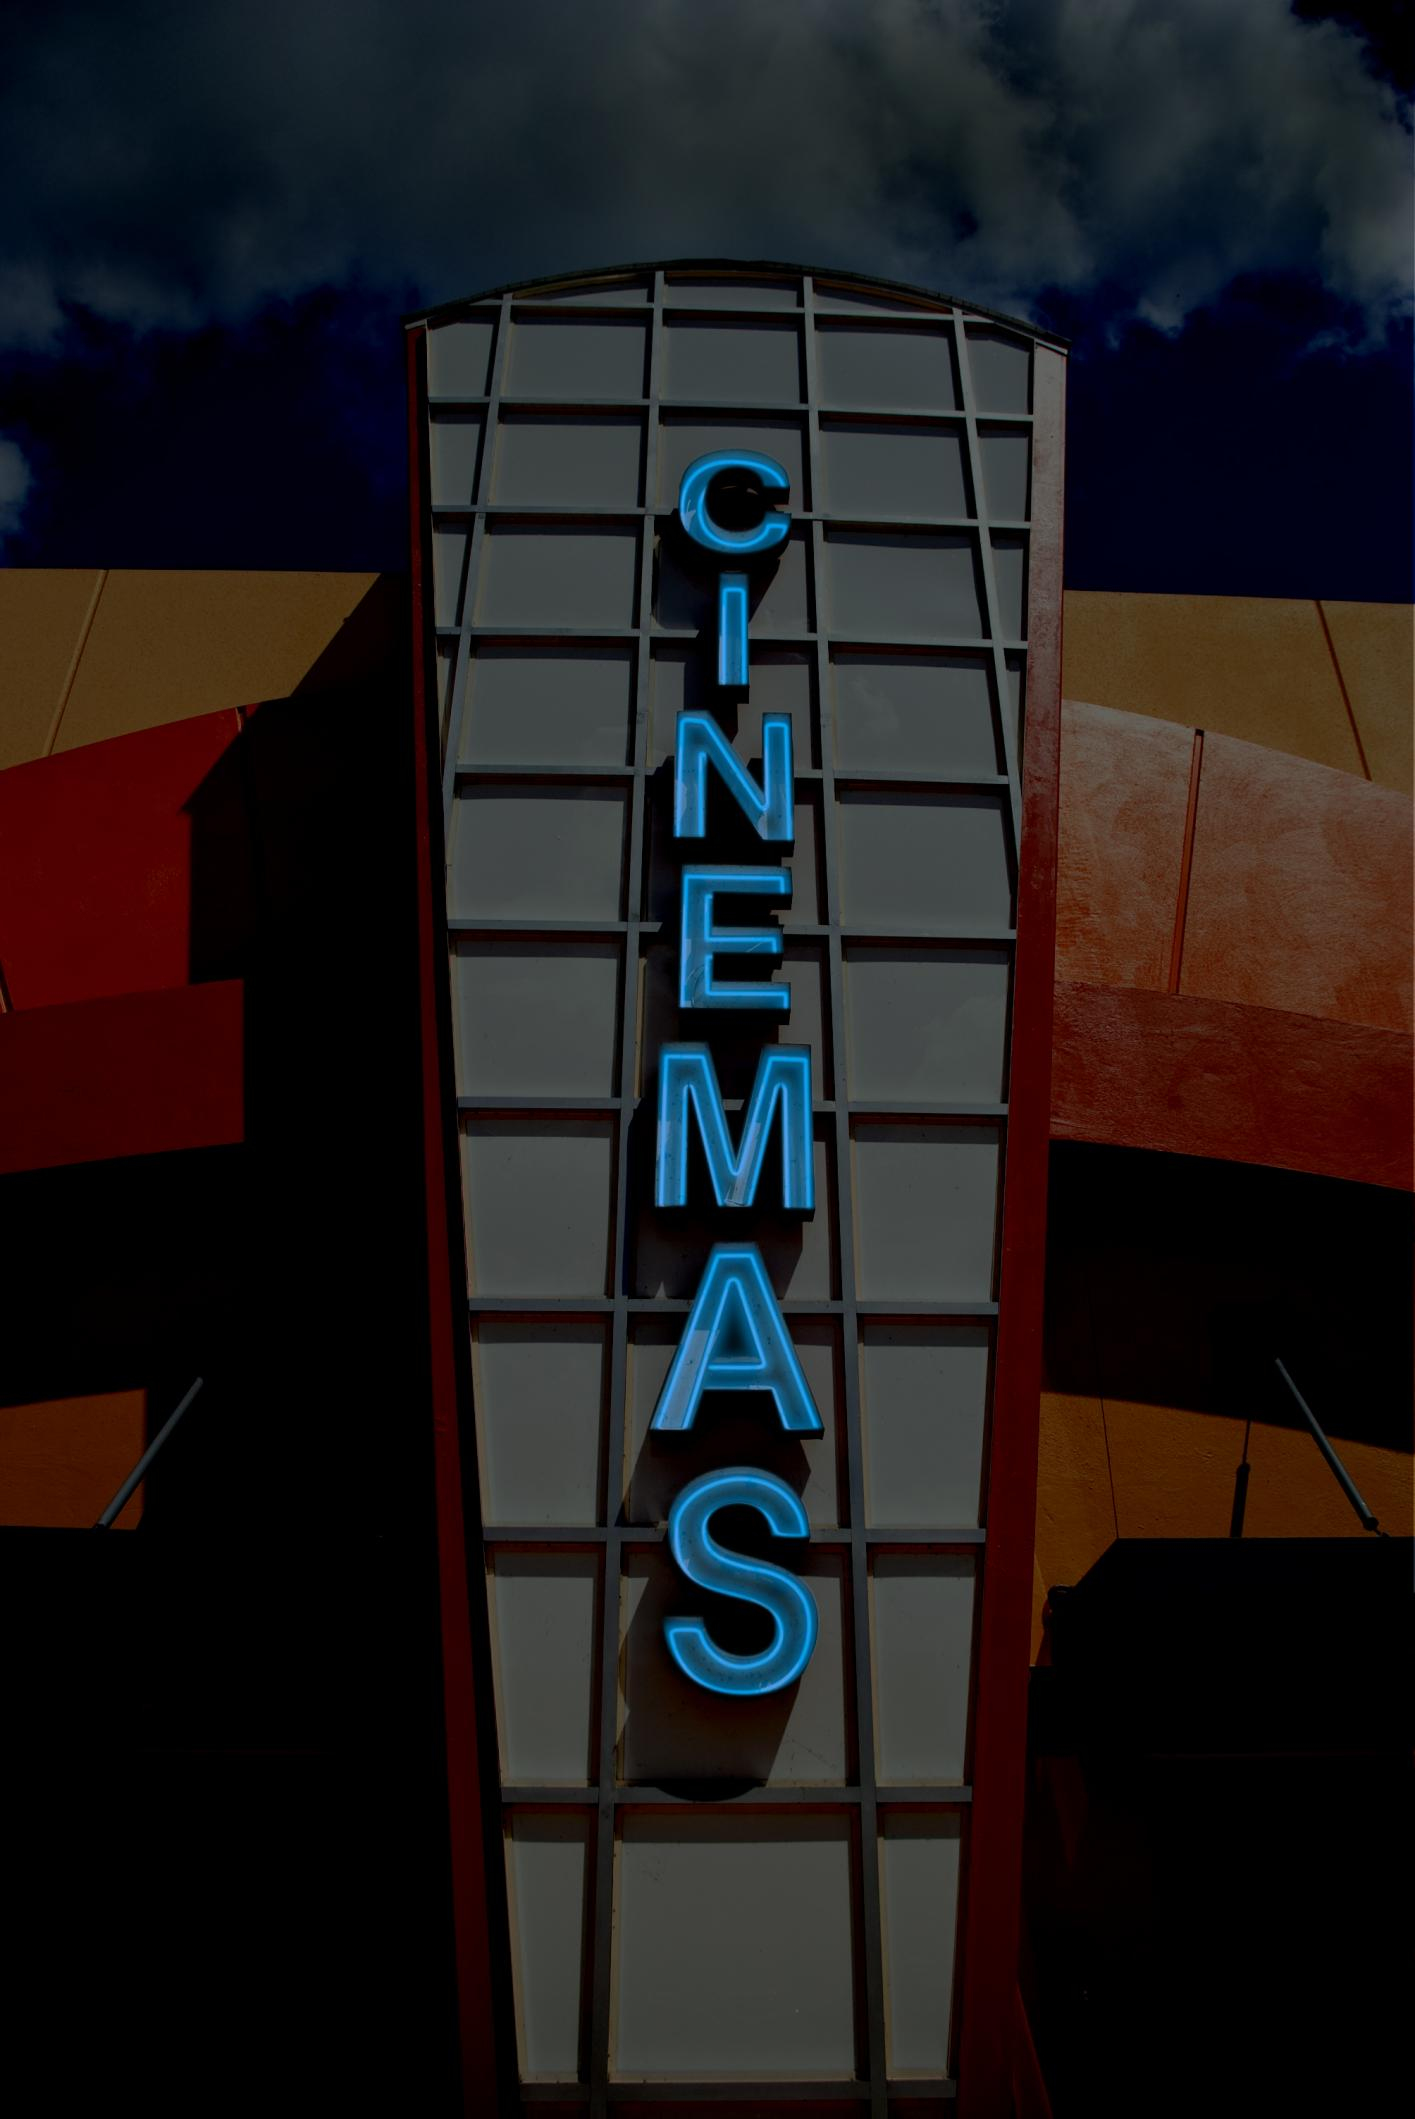 Lawsuits Allowed Against Aurora Cinemark Theater - TENNESSEE